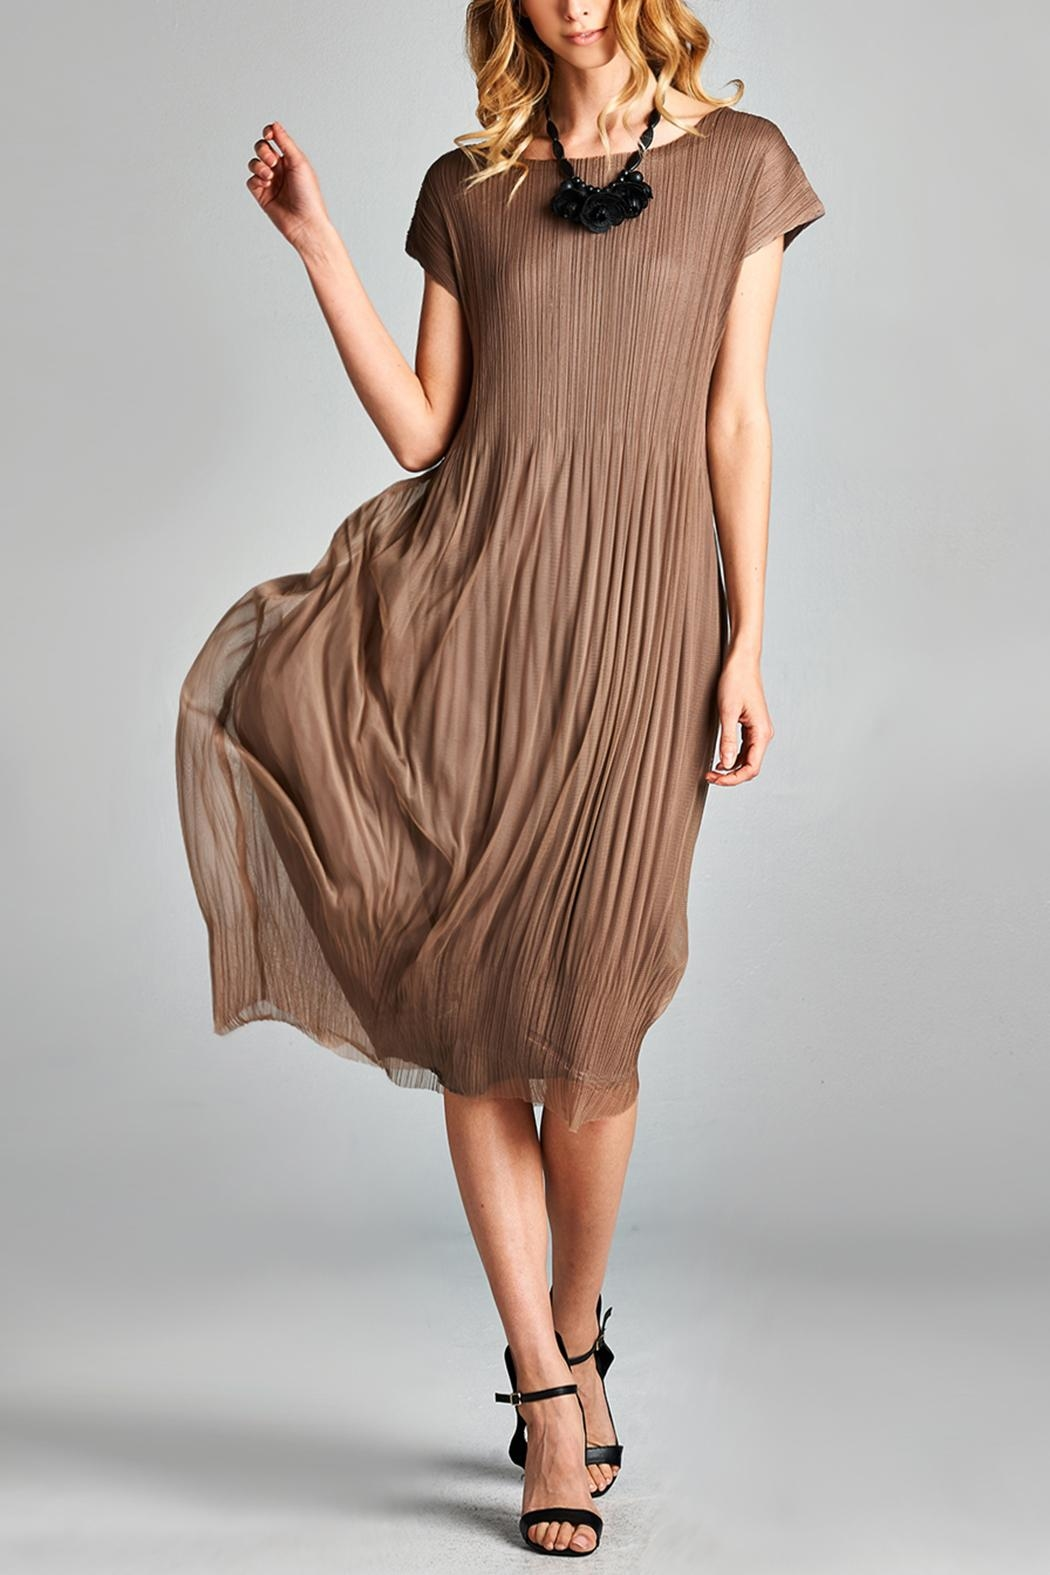 Nabisplace Cf Pleated Dress - Main Image